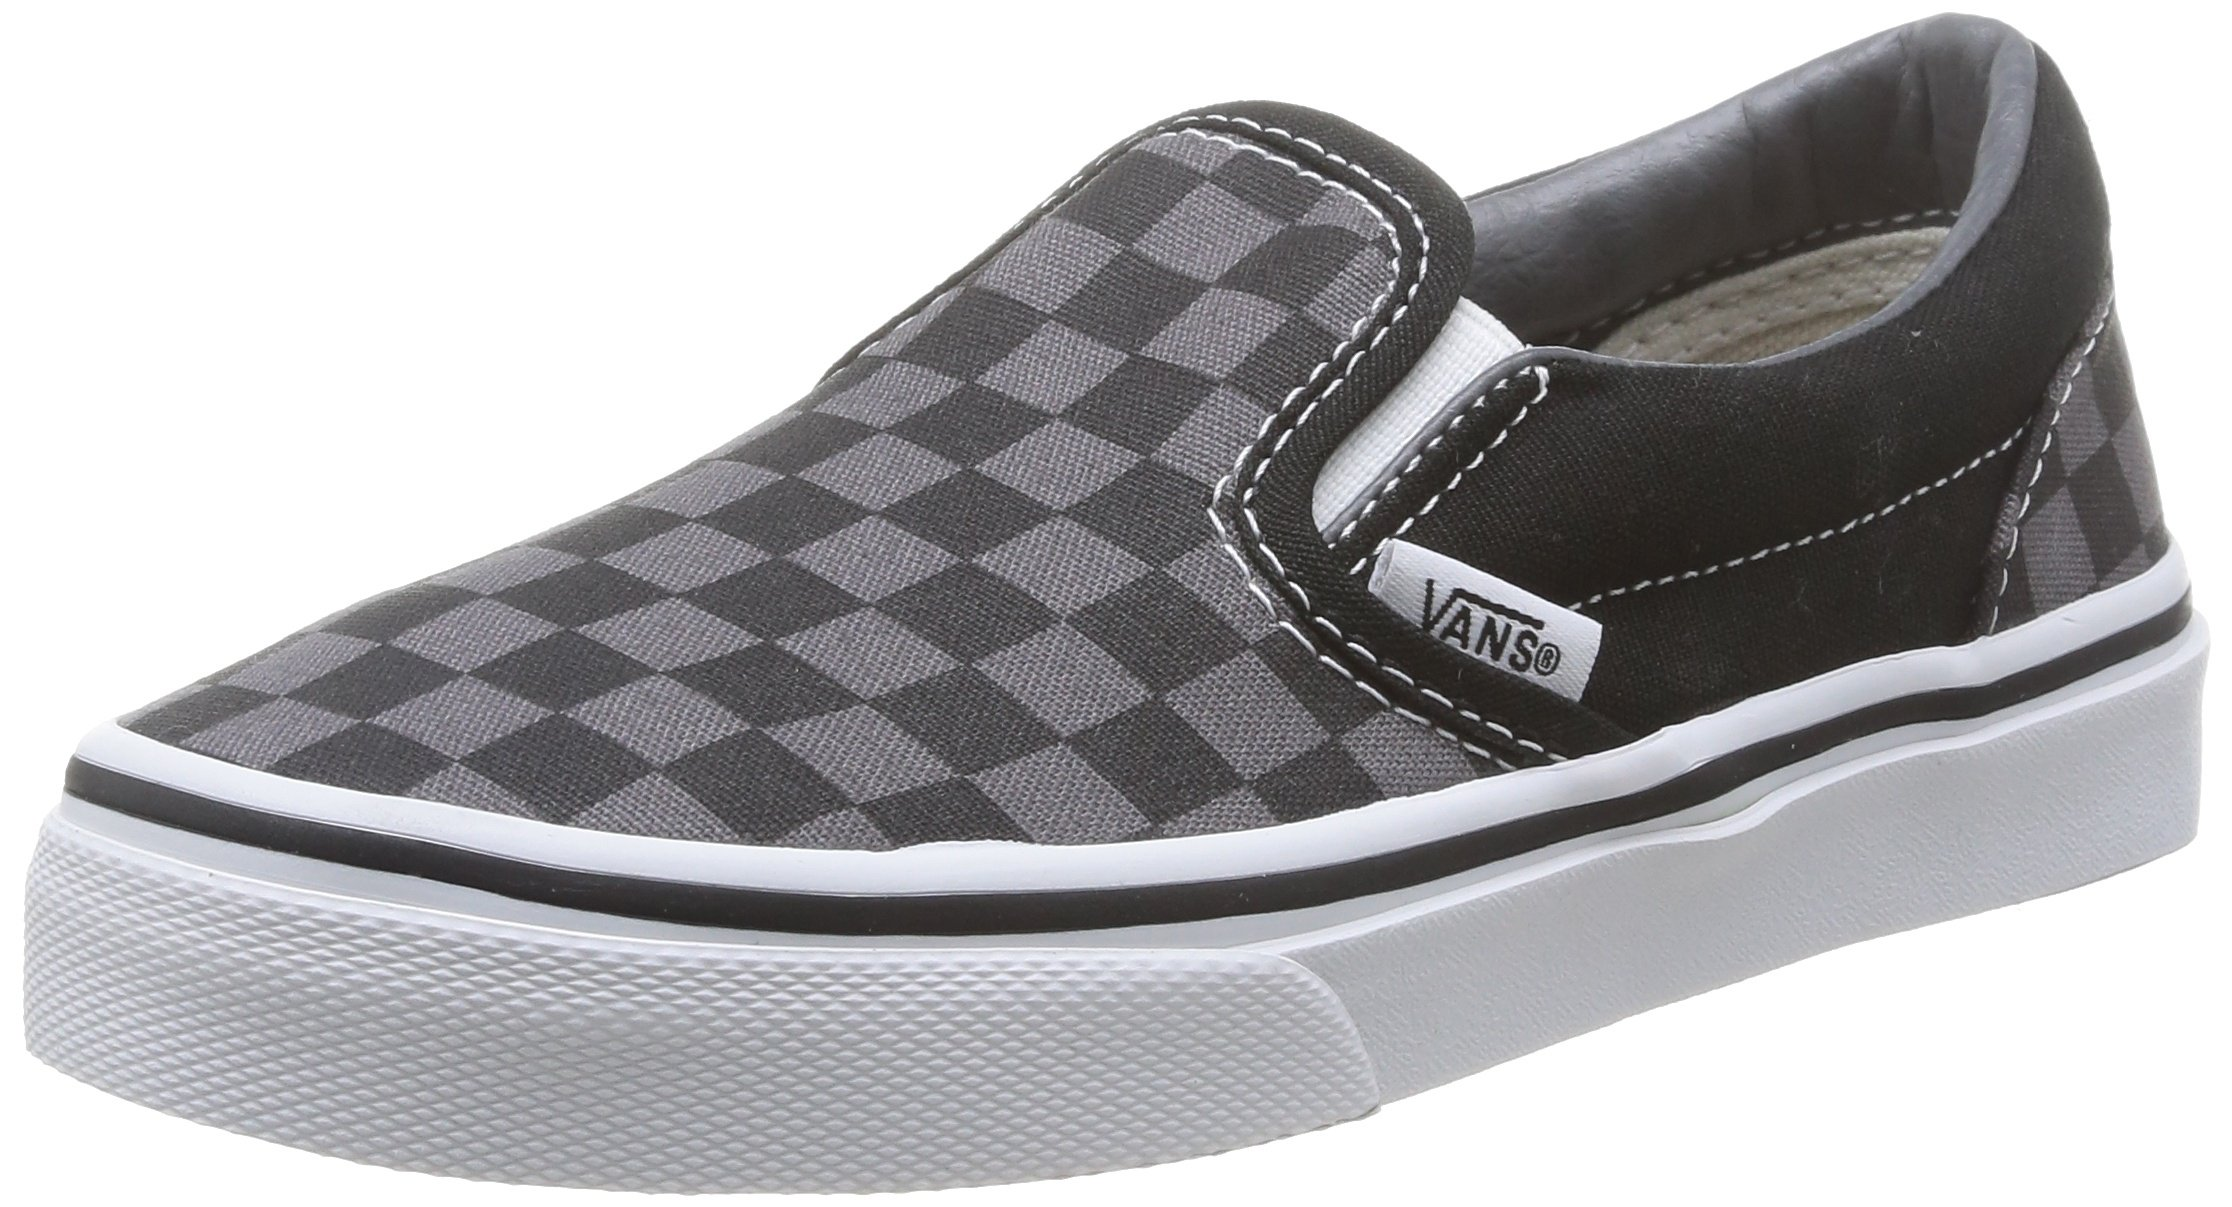 Vans Boys' Classic Slip-On (Tod/Yth) - (Checkerboard) Black/Pewter - 11 Toddler